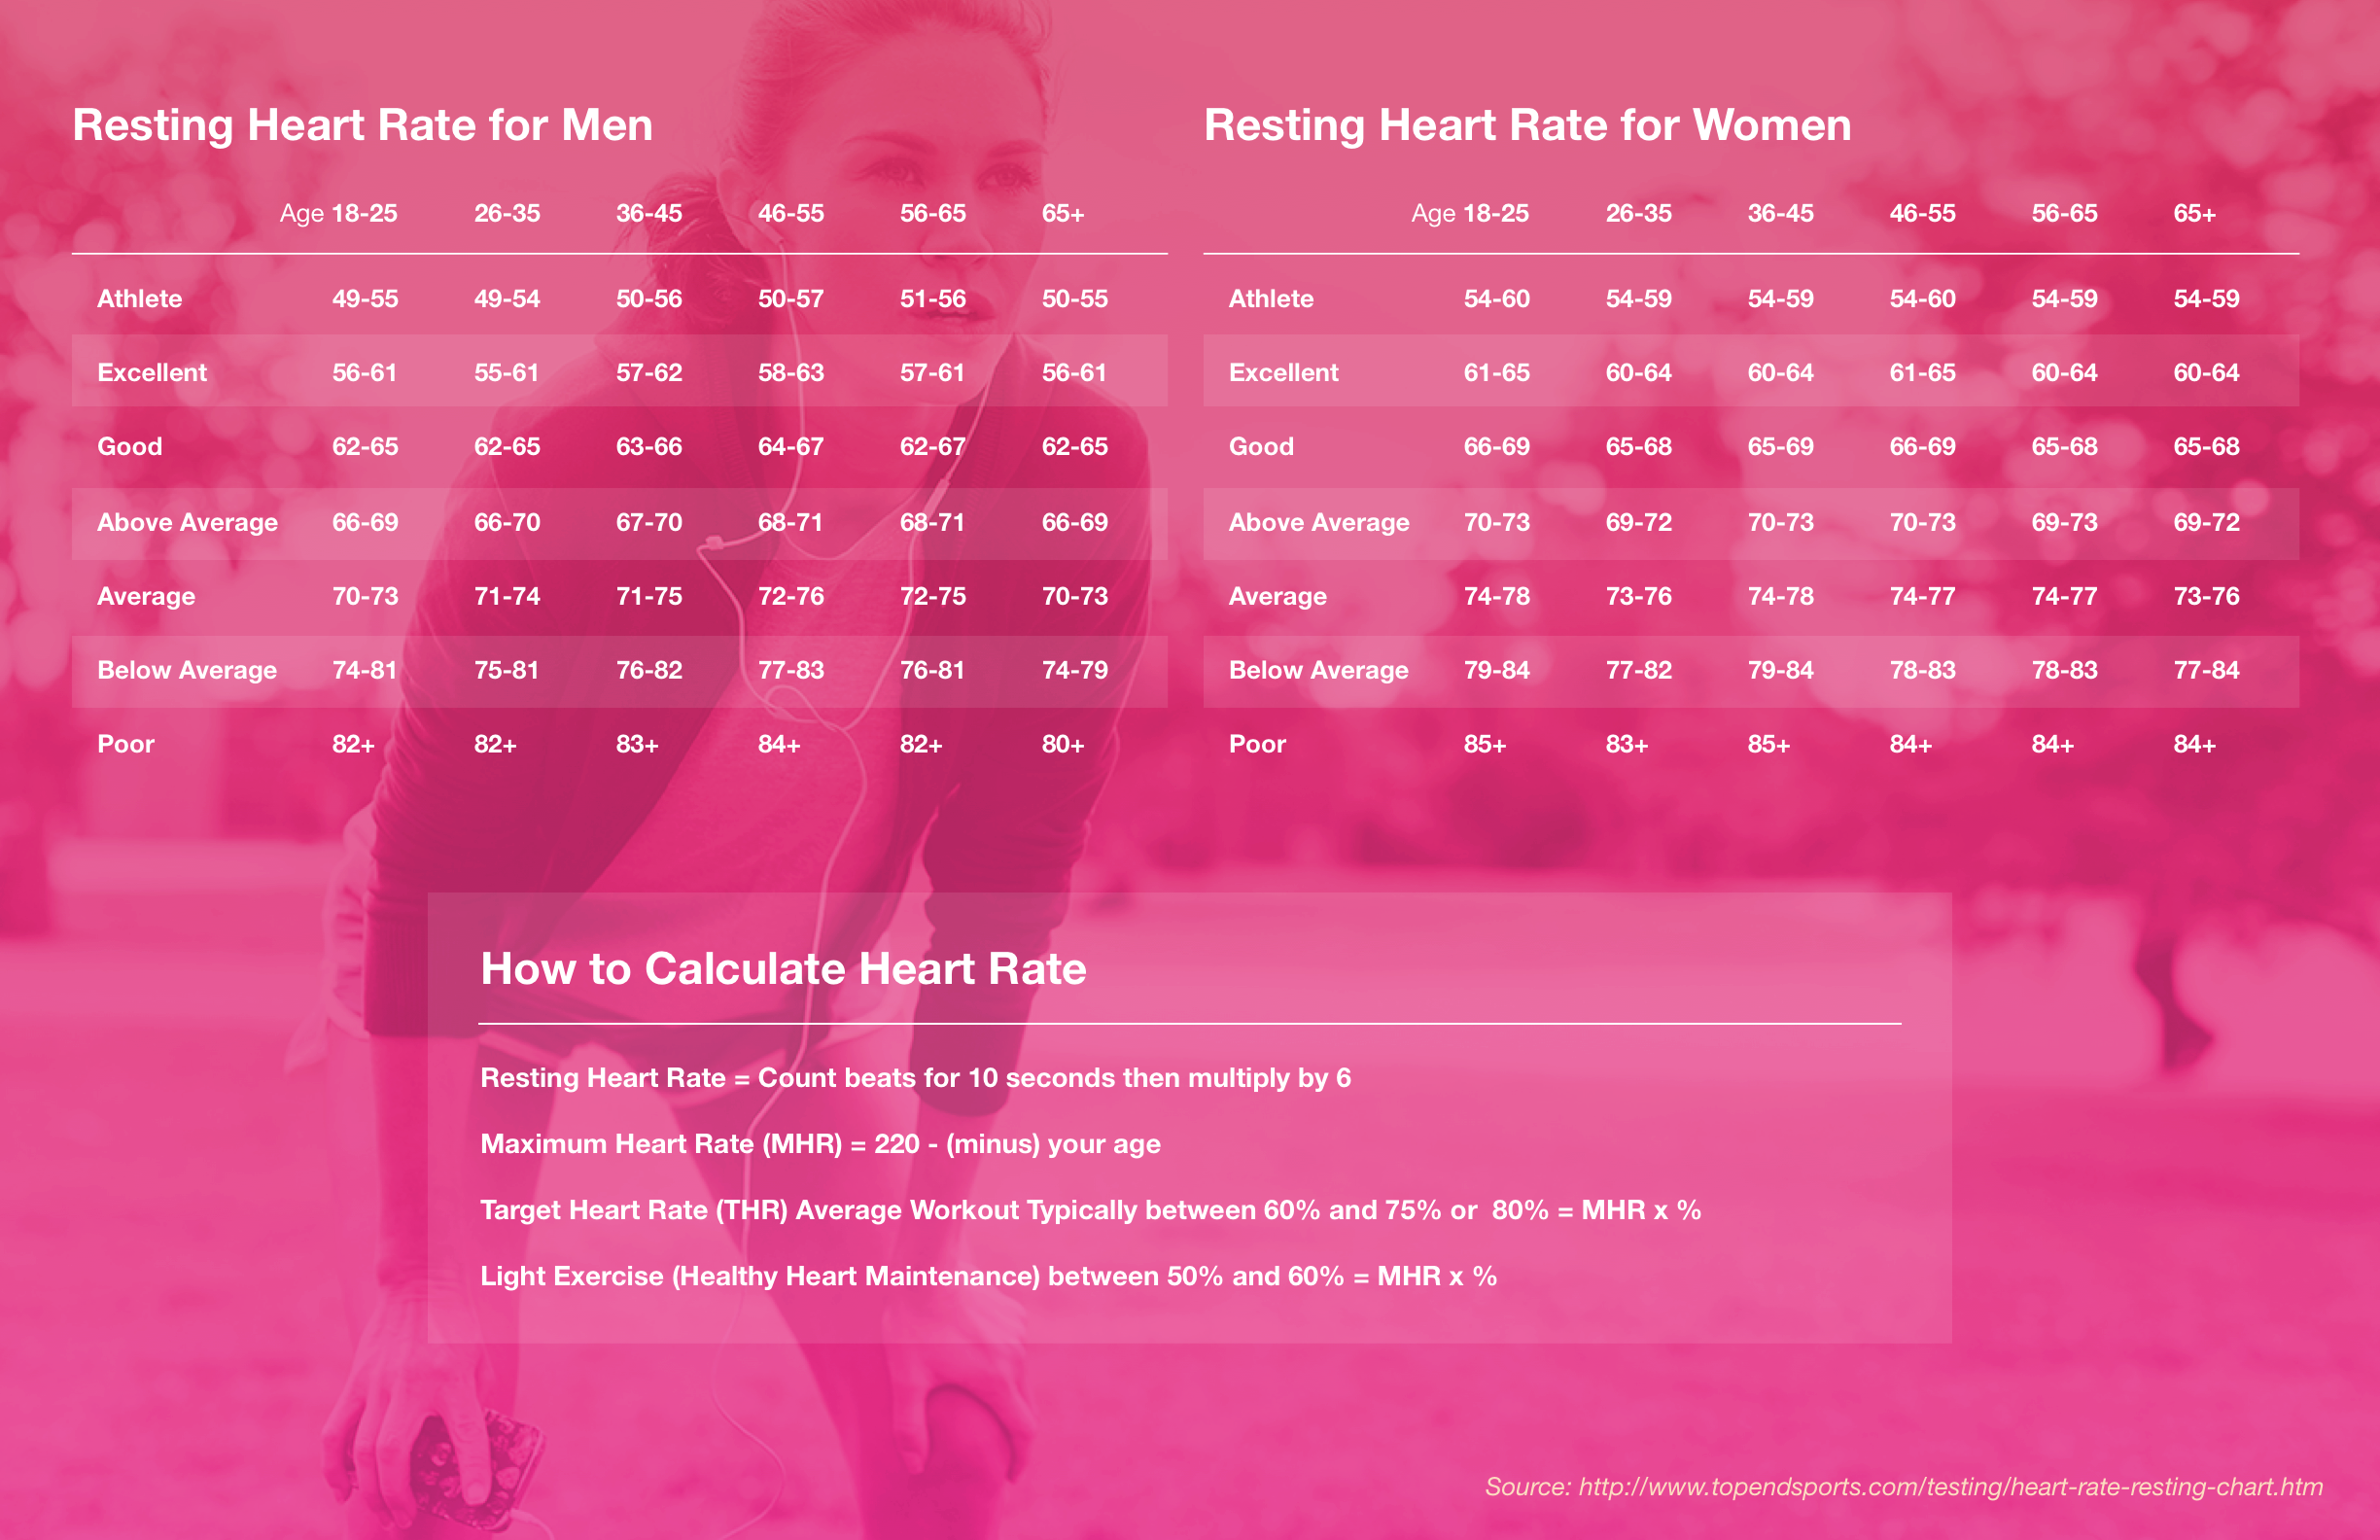 Figure 1.  Resting heart rate for men and women.